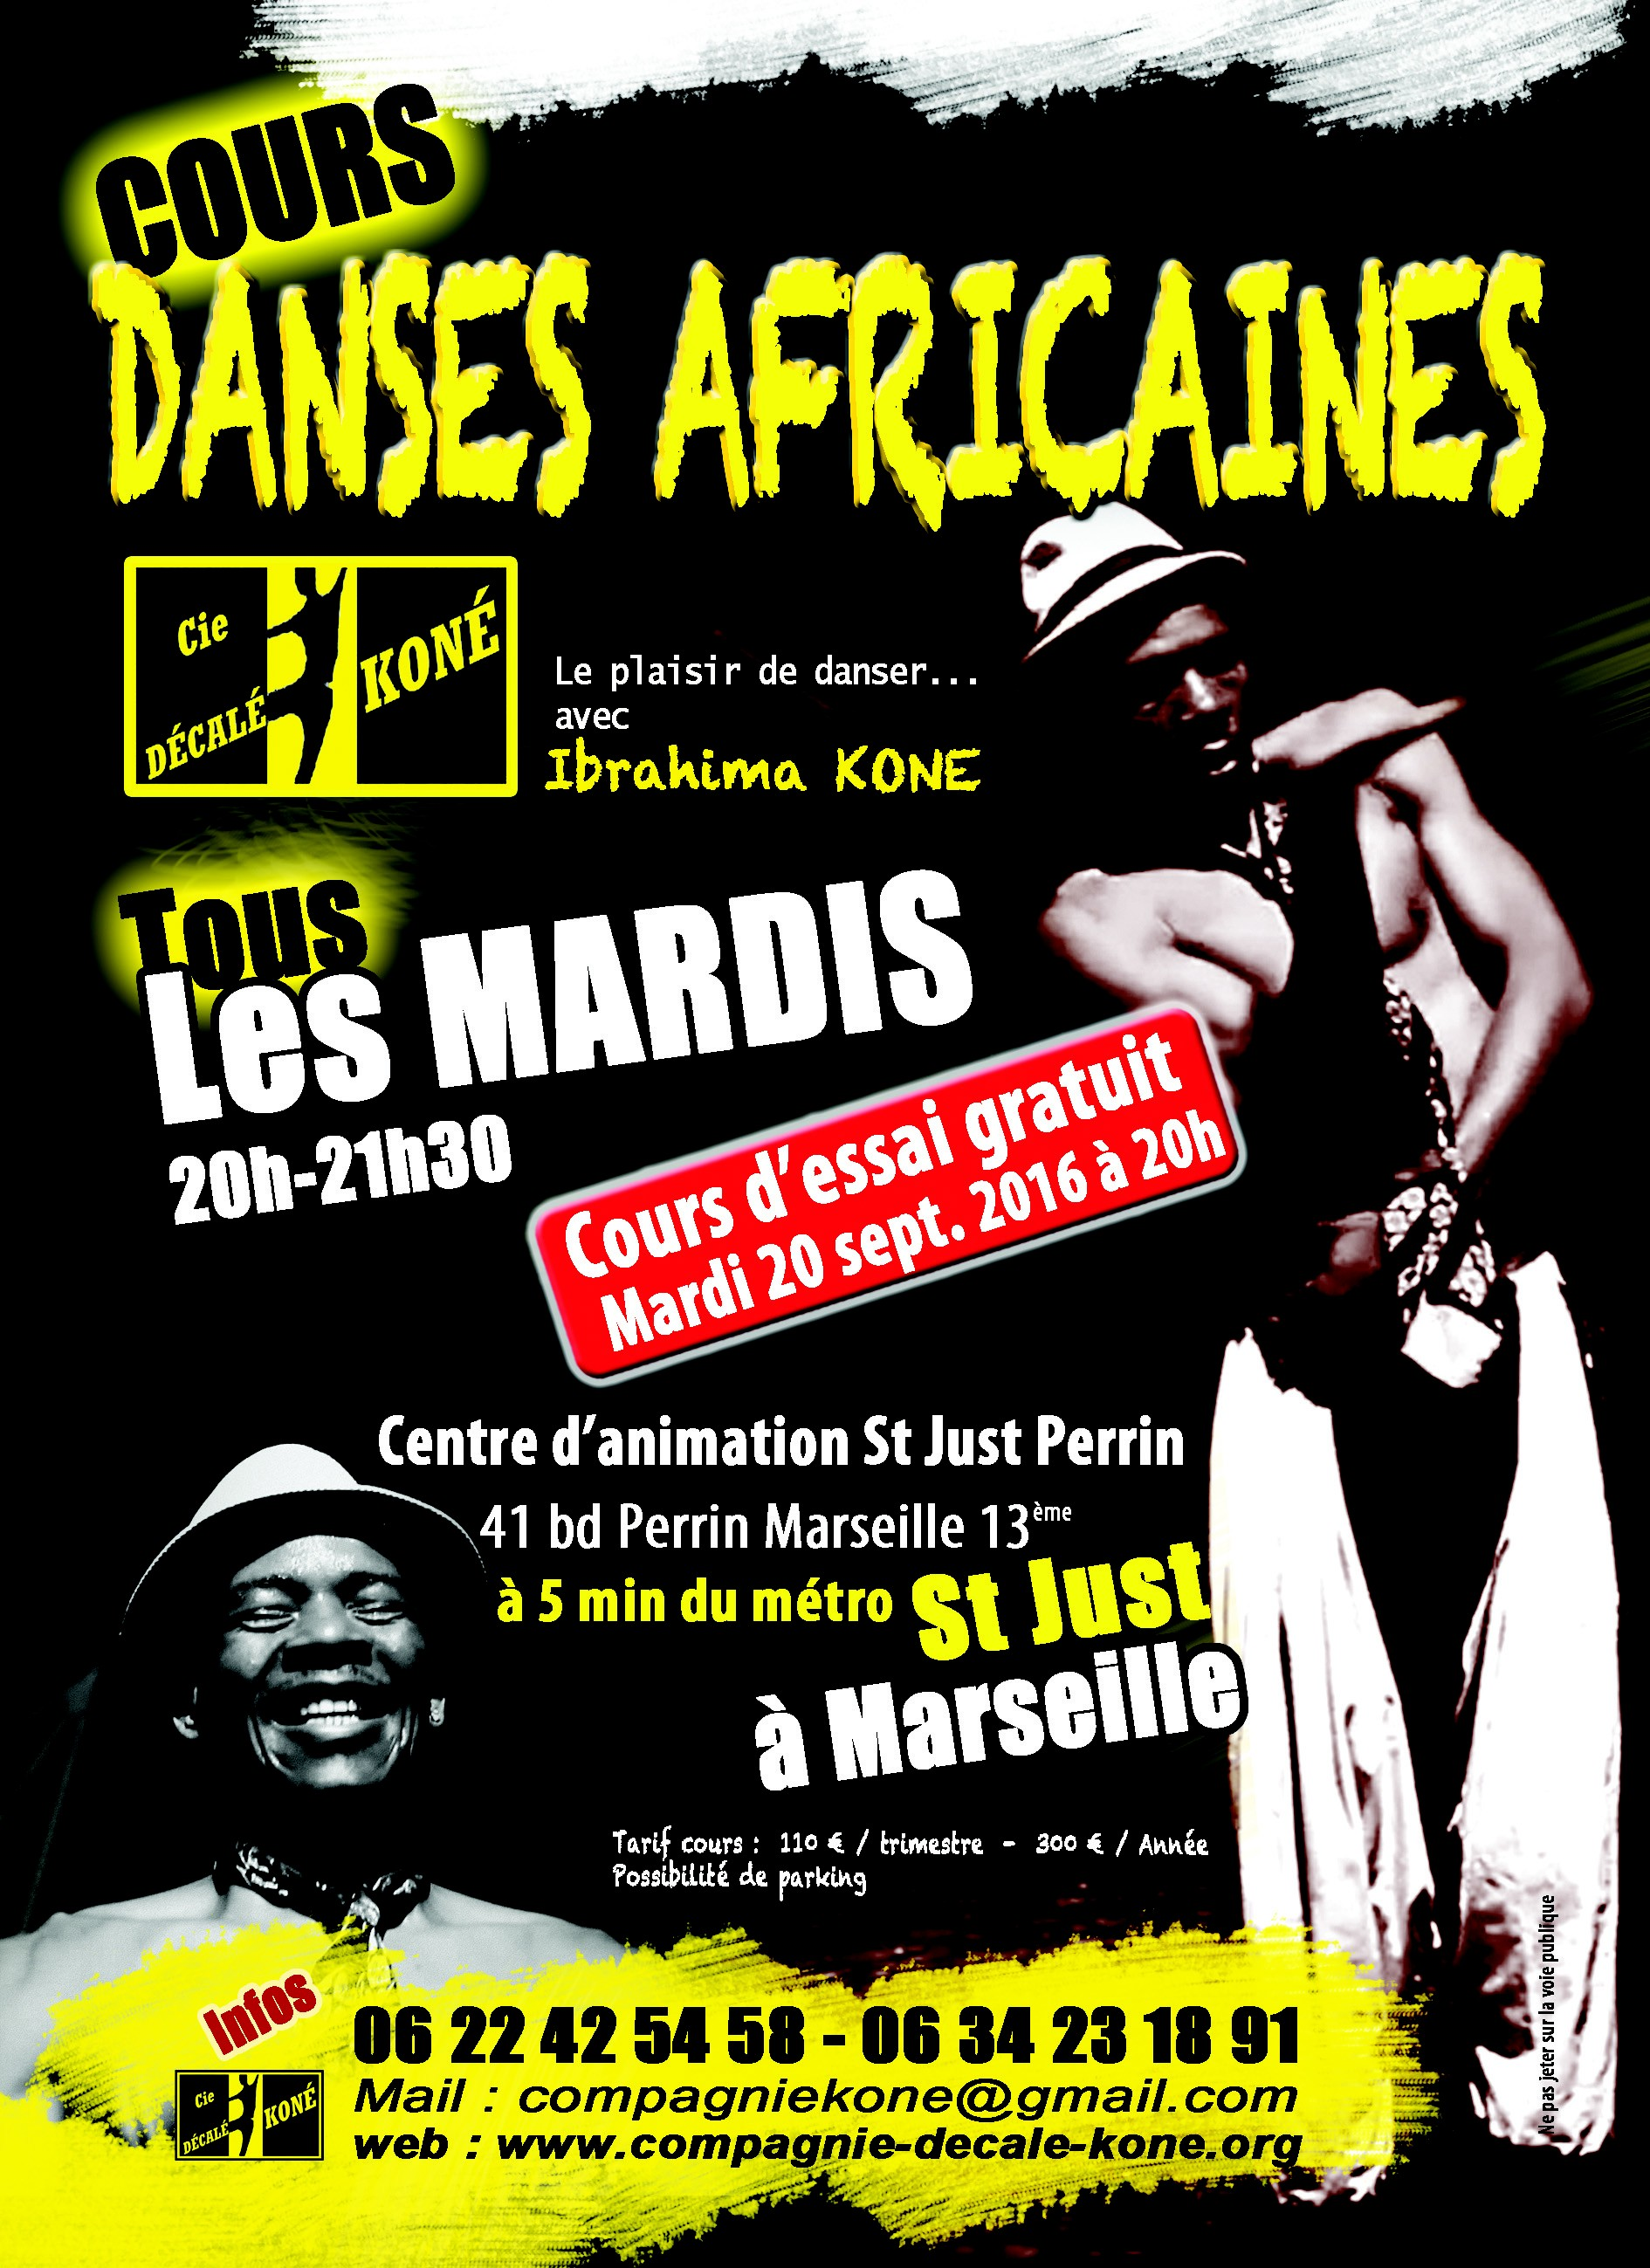 Cours danses africaines avec Ibrahima KONE..